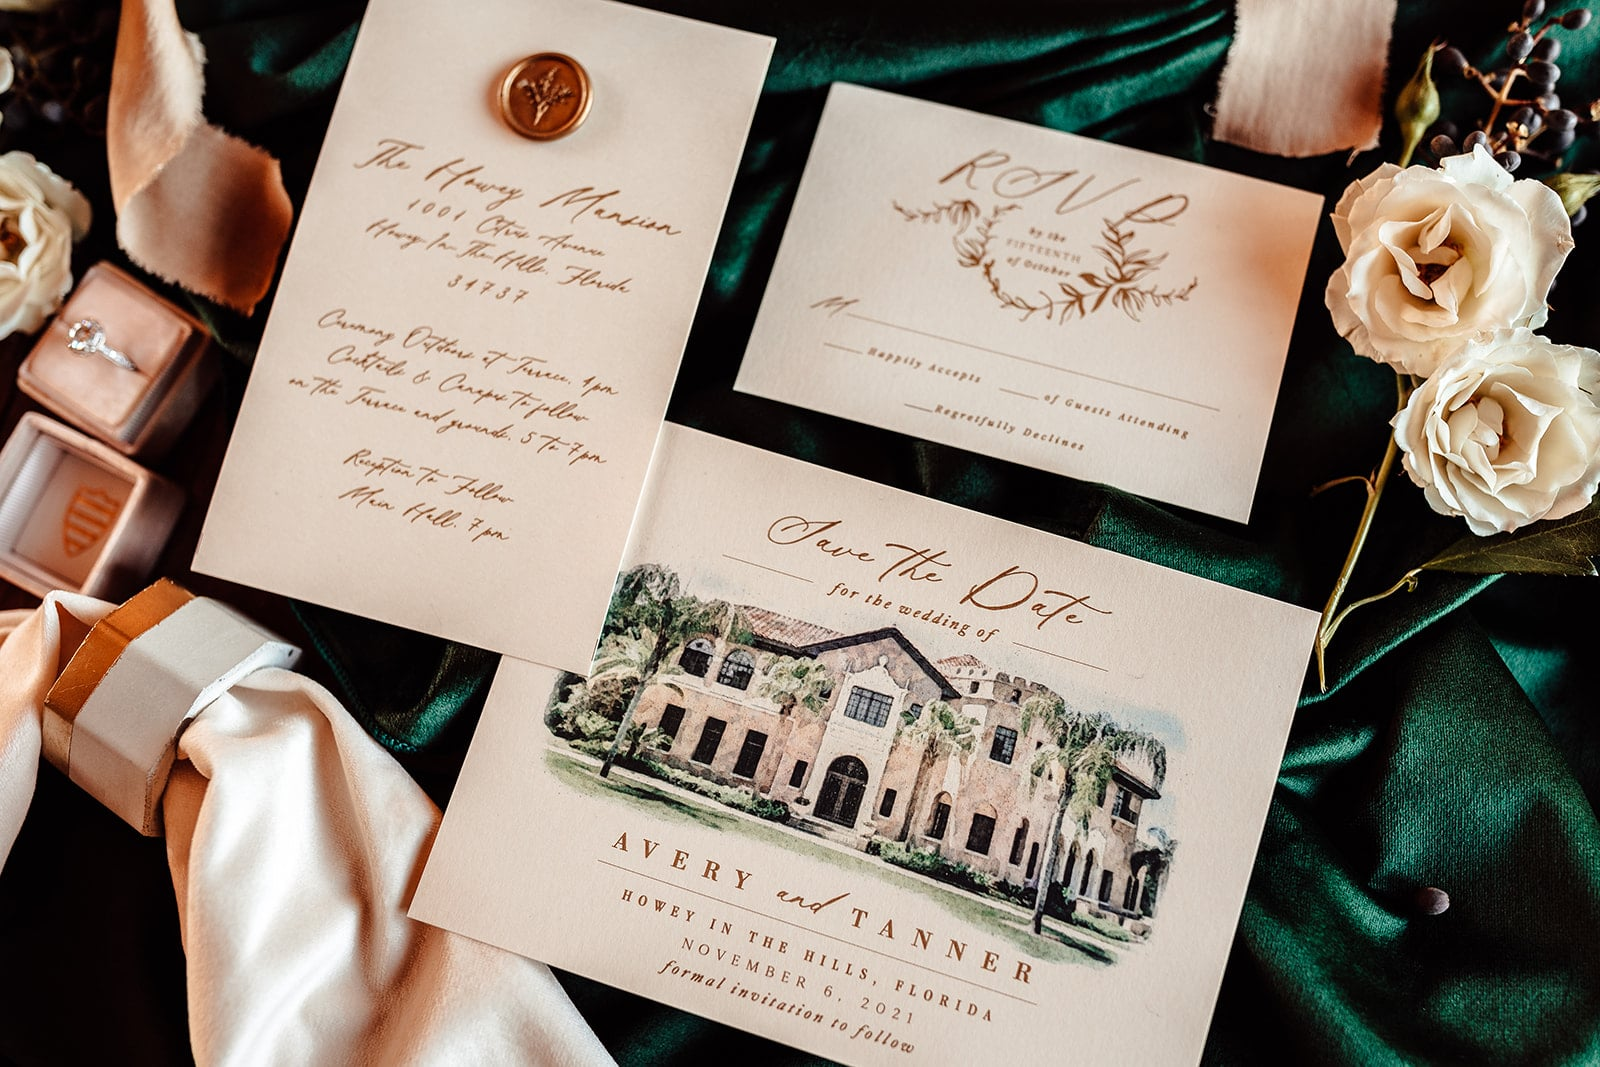 parts of wedding invitation suite with custom drawing of the historic wedding venue with white flowers on the right and ring inside ring box to the left of the image